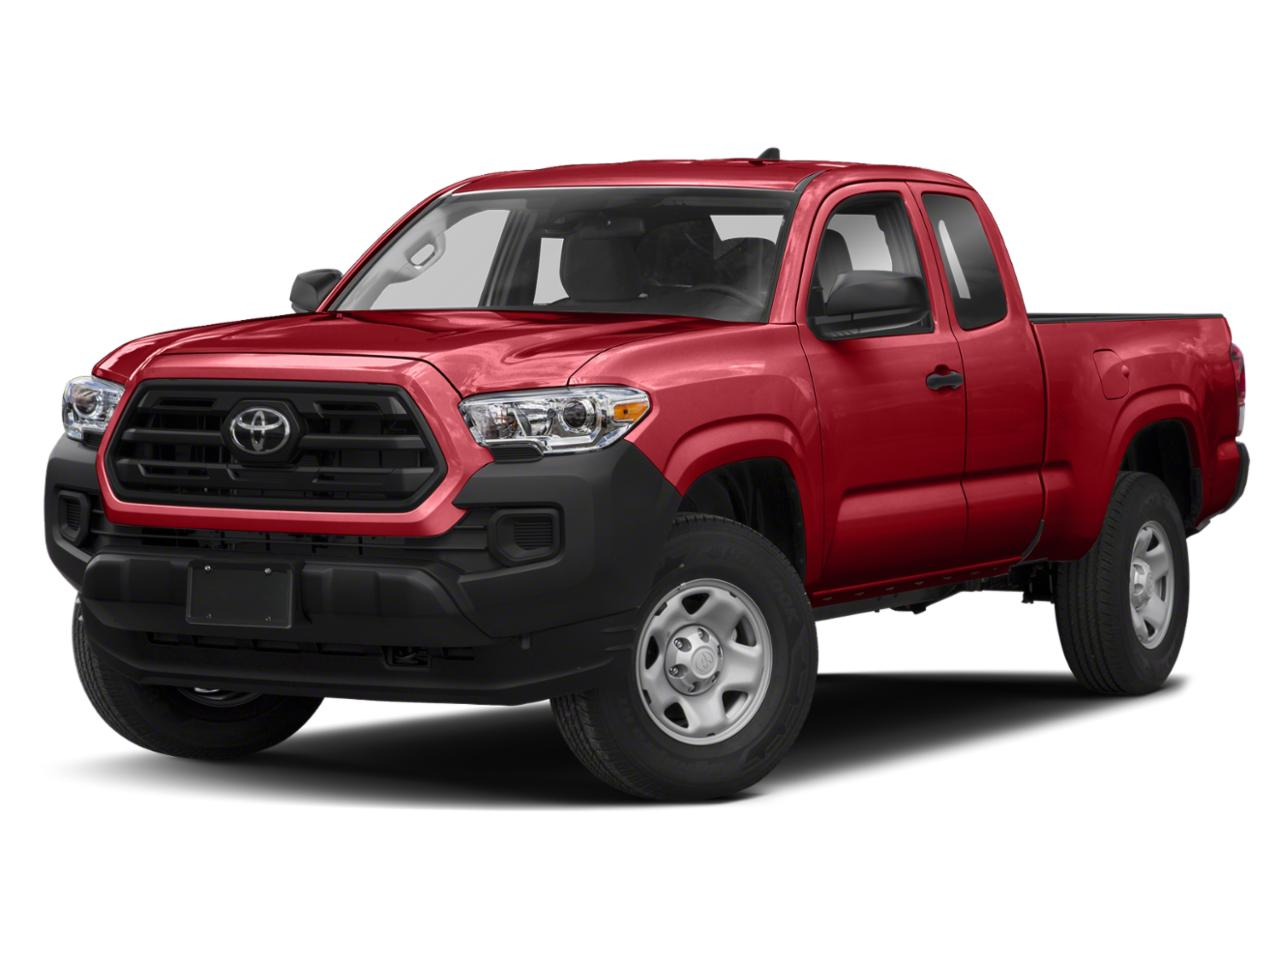 2019 Toyota Tacoma 2WD Vehicle Photo in Kernersville, NC 27284